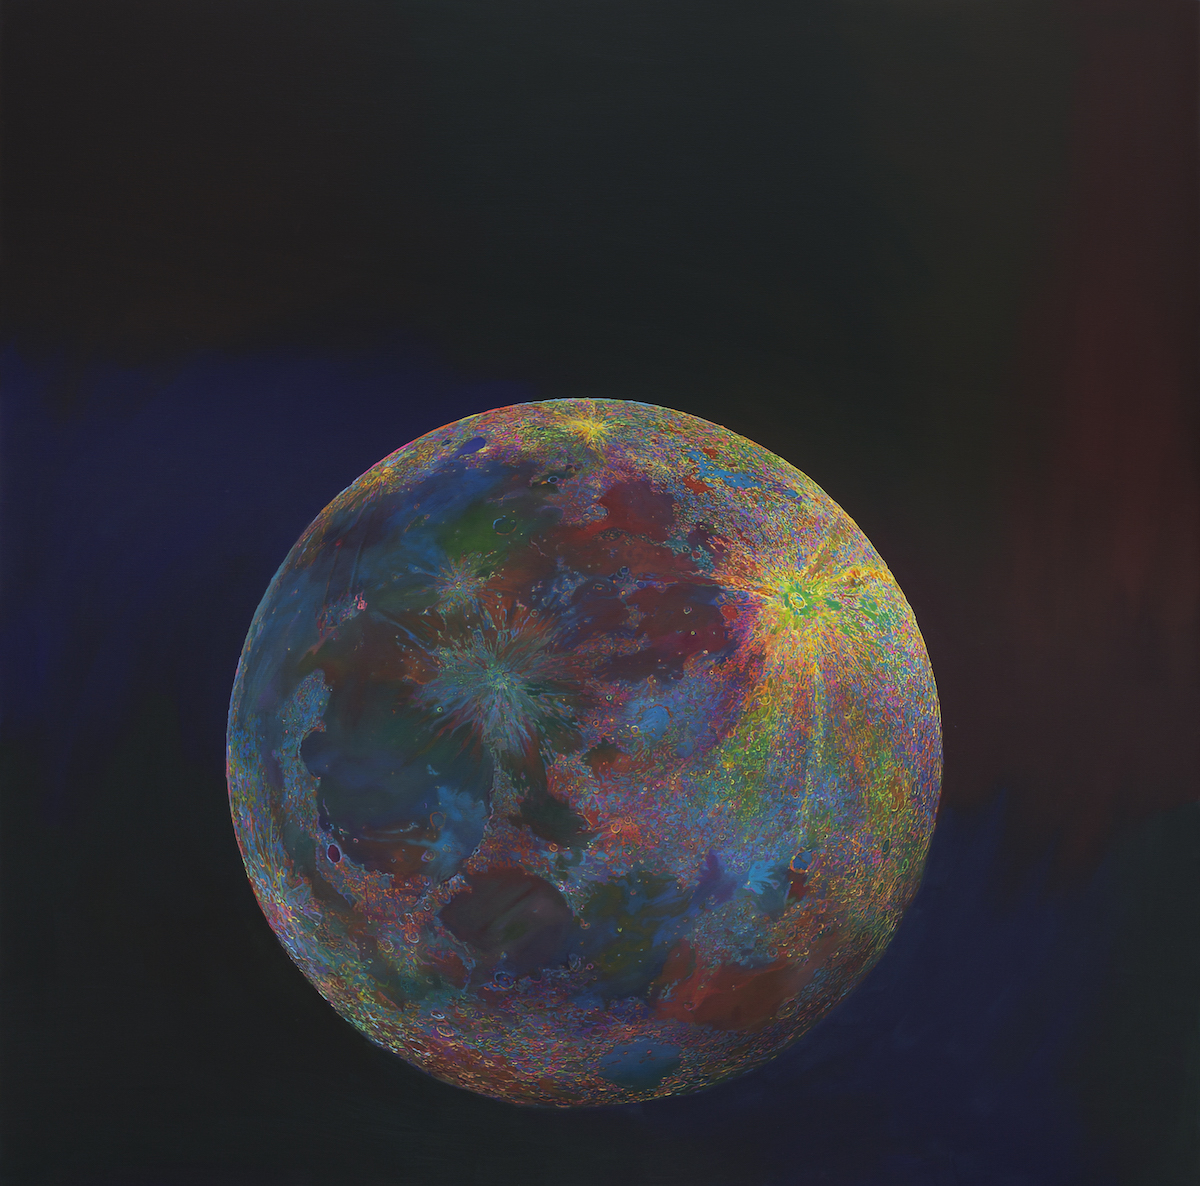 Wang Yuyang, Moon 201808, 2018. Courtesy of John Dodelande.